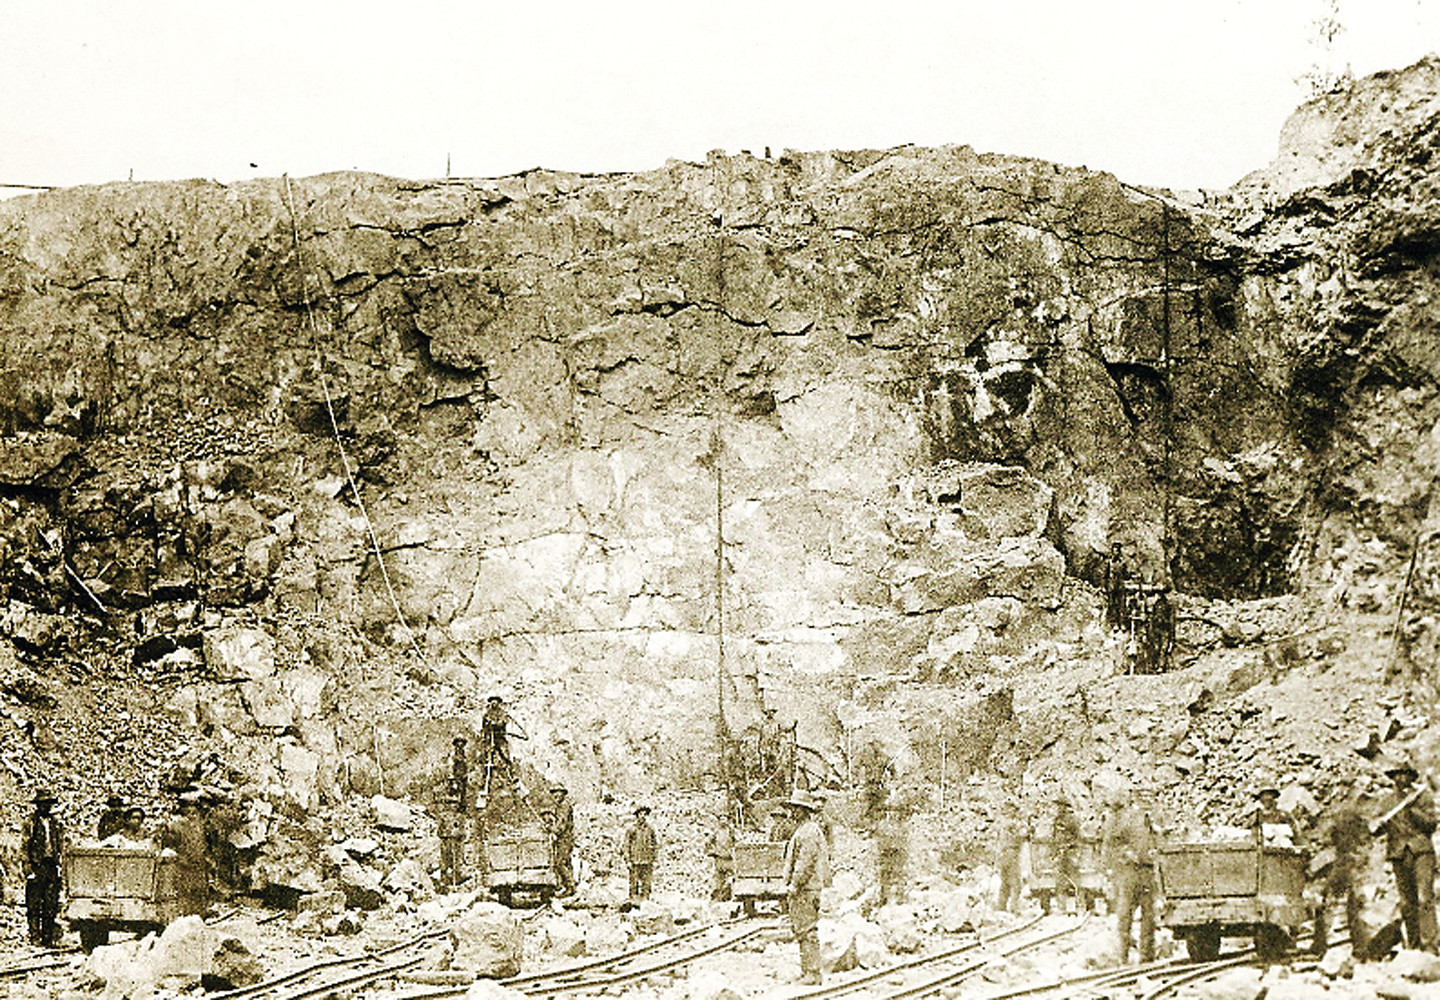 The Lee Mine, located on the hill north of Tower, abruptly closed in the 1880s just shortly after 